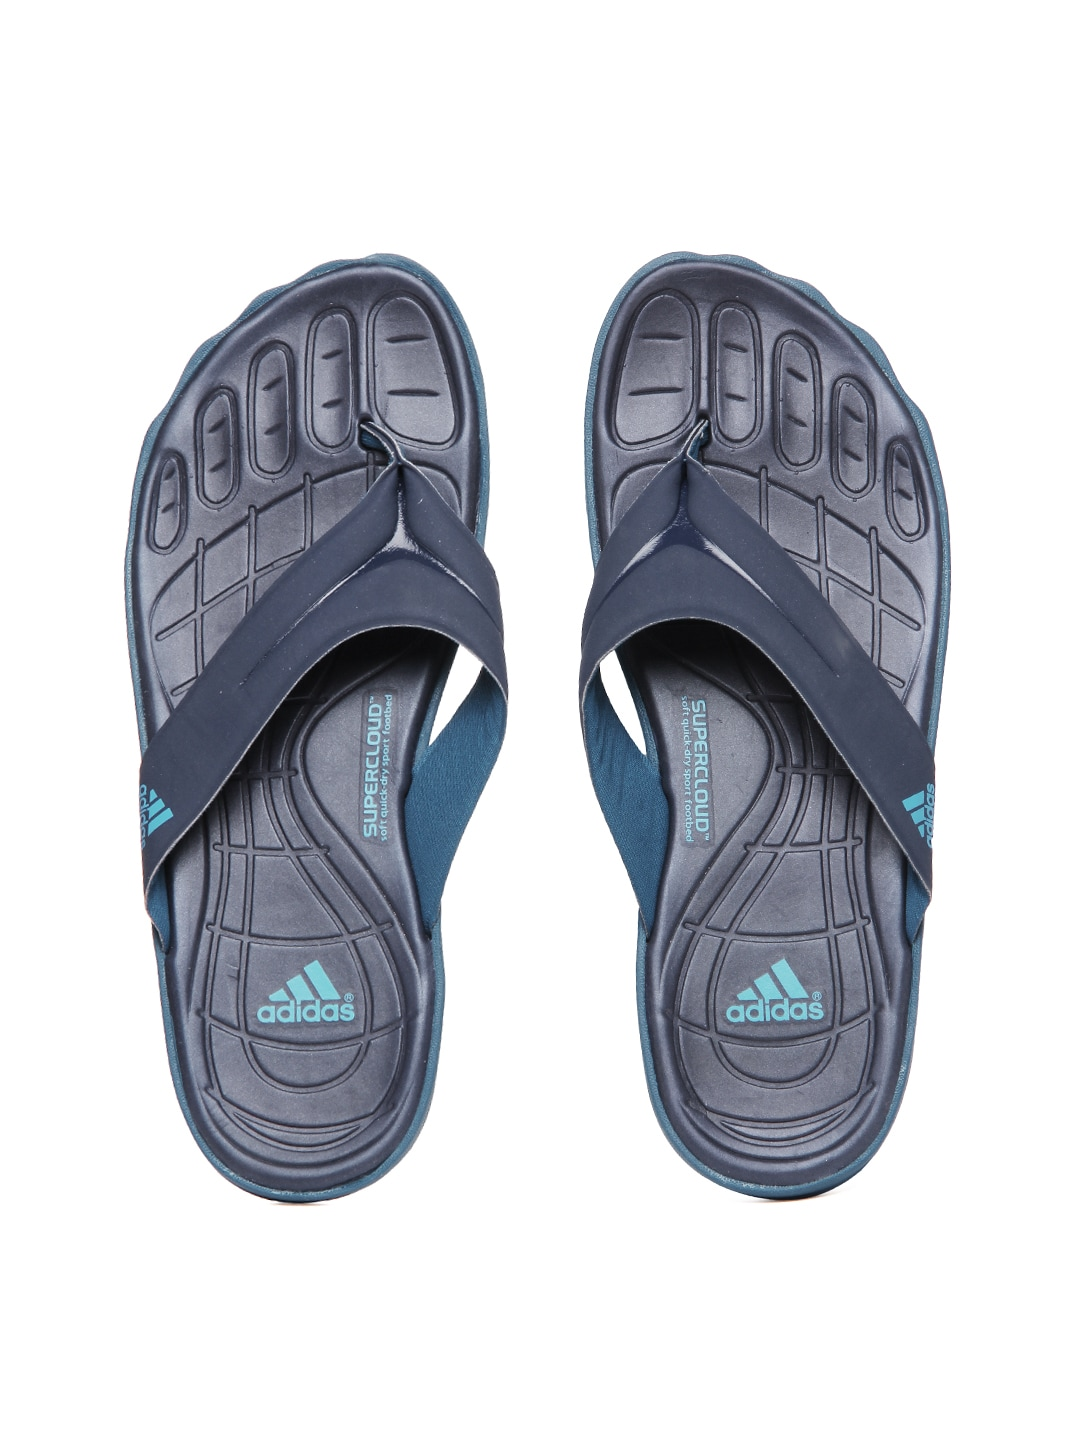 4f49873b4e14 Buy buy adidas sandals online   OFF66% Discounted